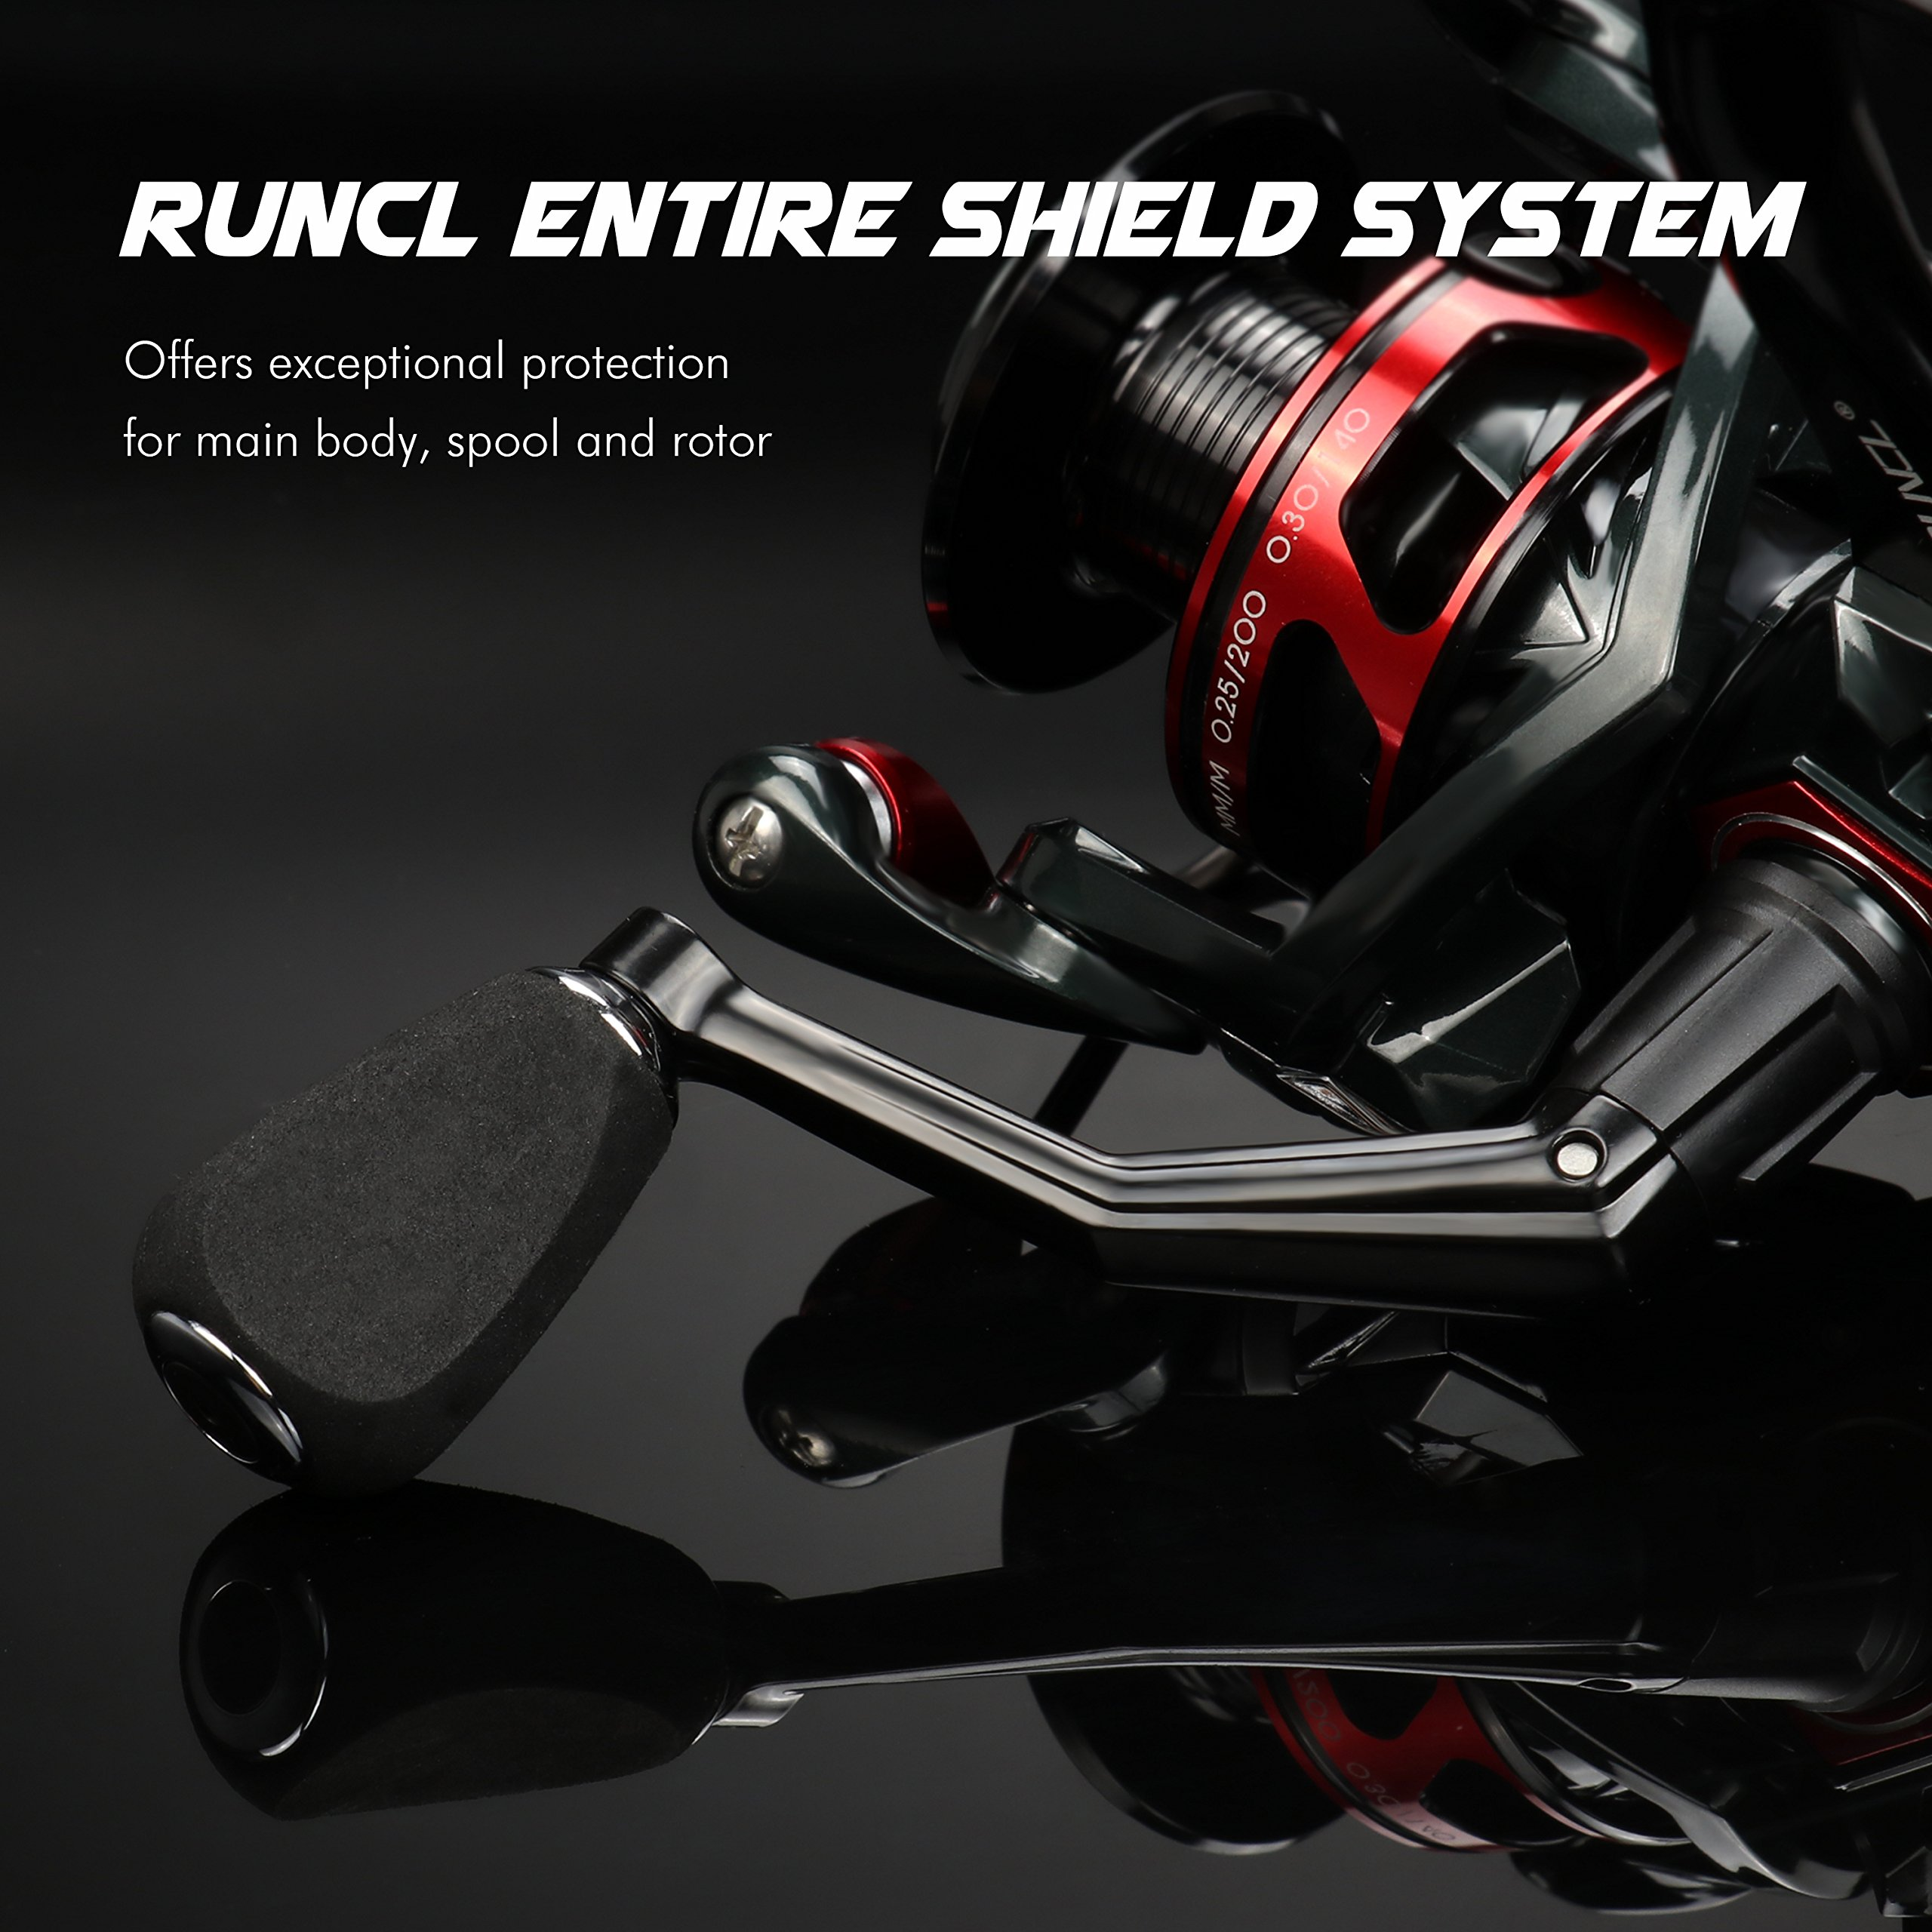 RUNCL Spinning Reel Titan I, Fishing Reel with Full Metal Body, Max Drag 44LB, 5 Carbon Fiber Drag Washers, 9+1 Stainless Steel Shielded Bearings, Hollow Out Rotor for Saltwater and Freshwater (5000) by RUNCL (Image #6)